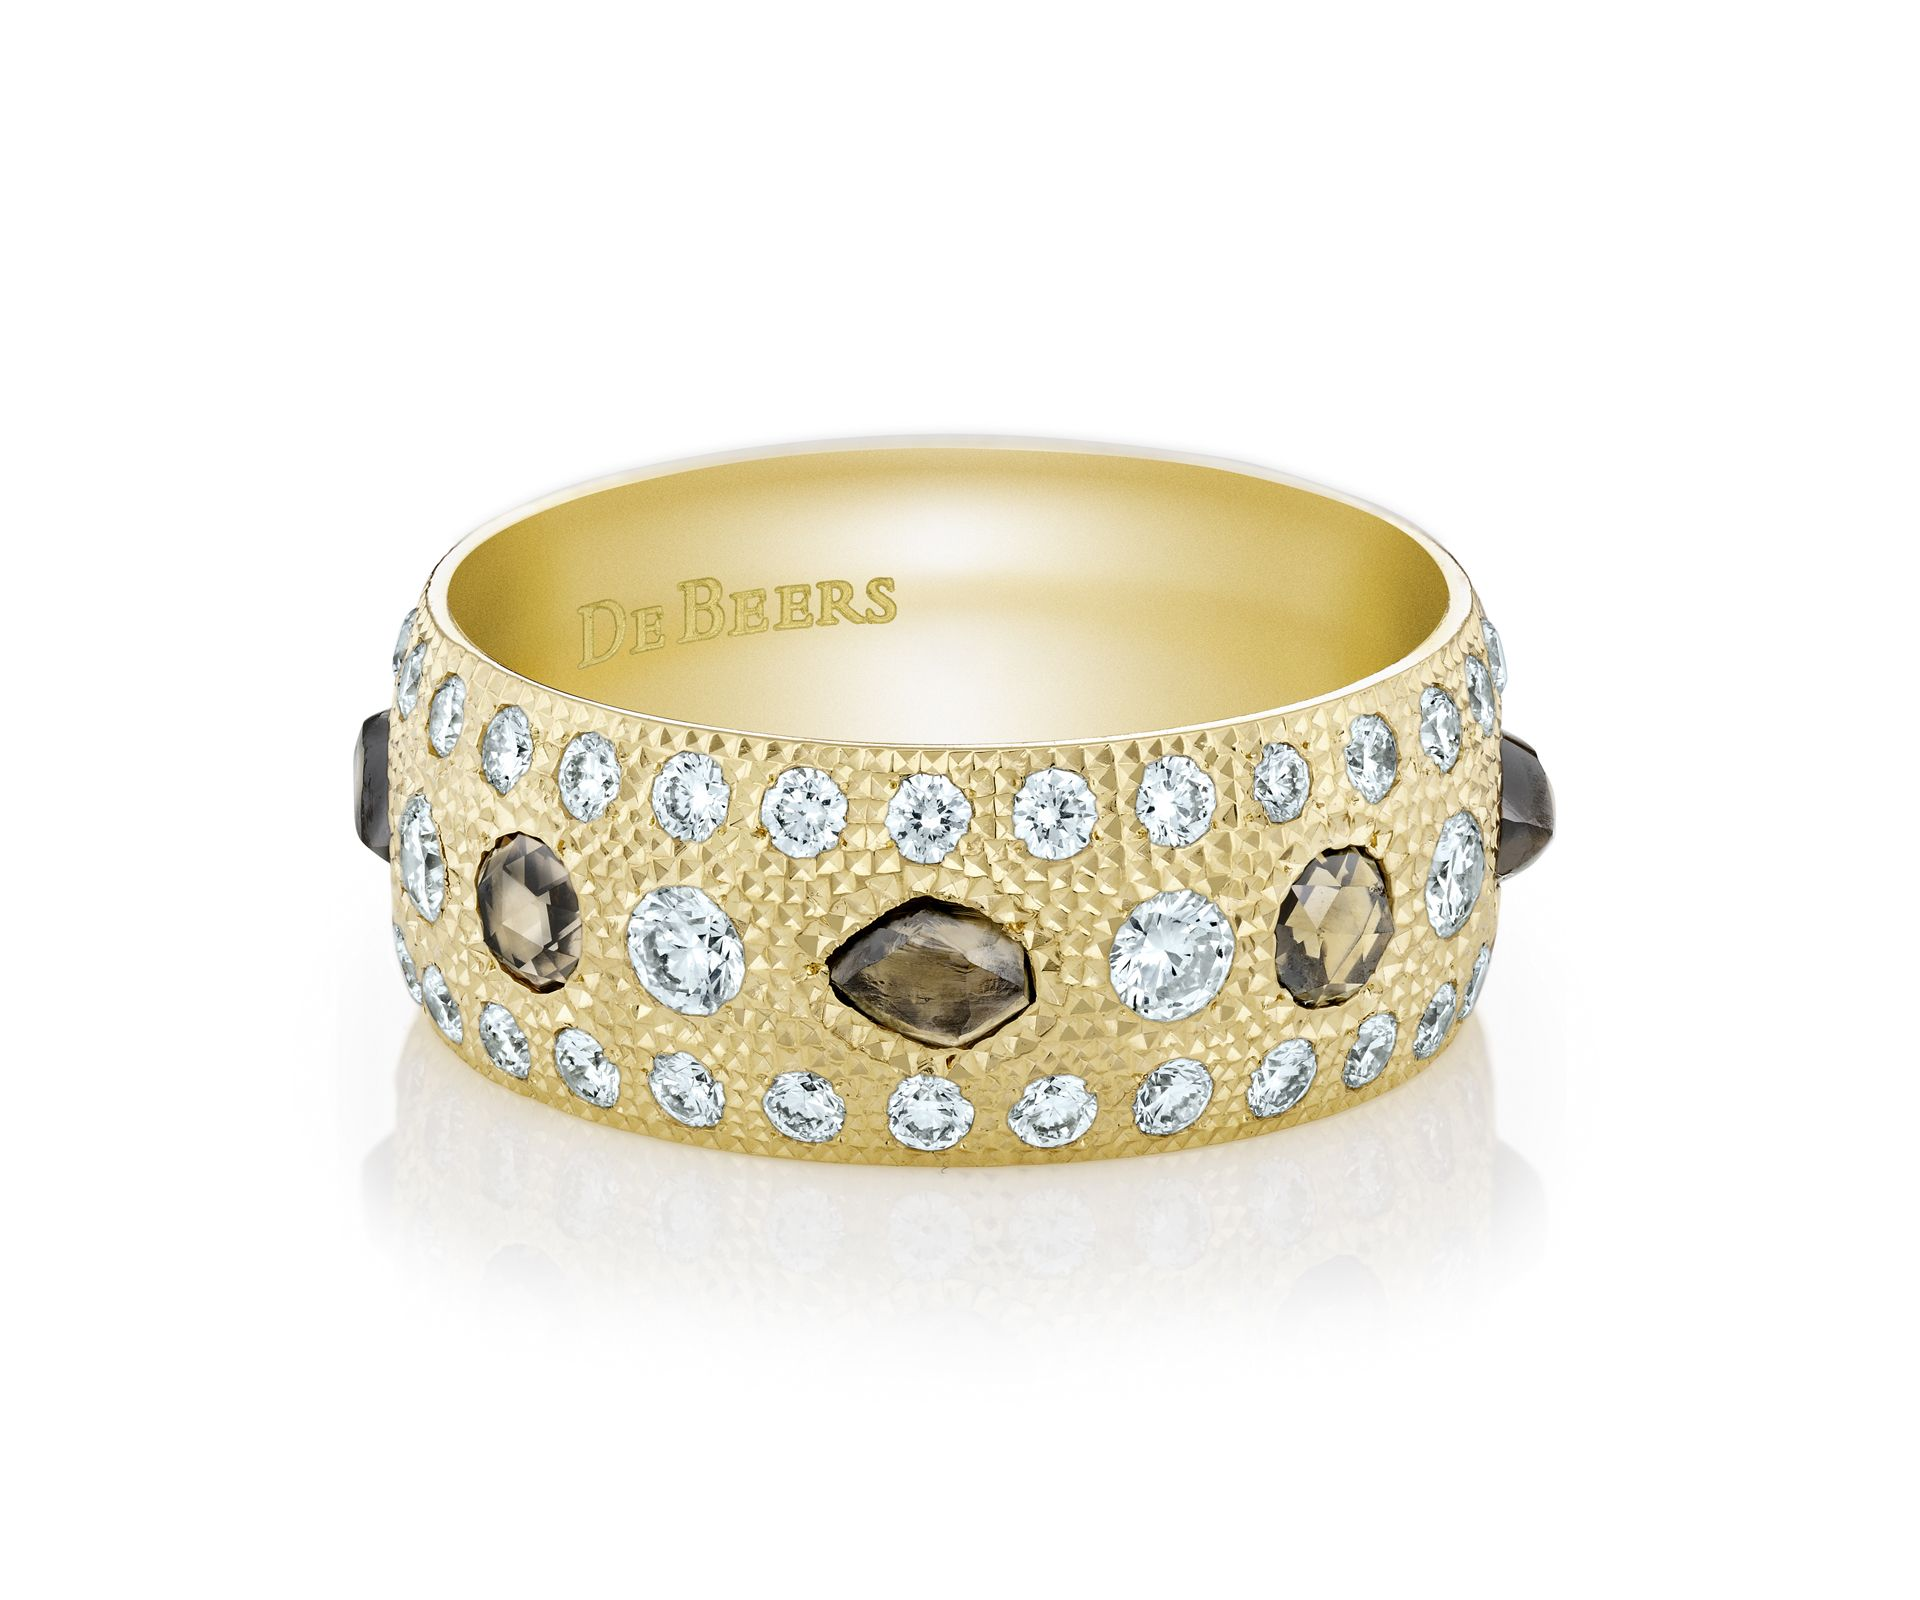 De beers talisman collection bling pinterest de beers bling